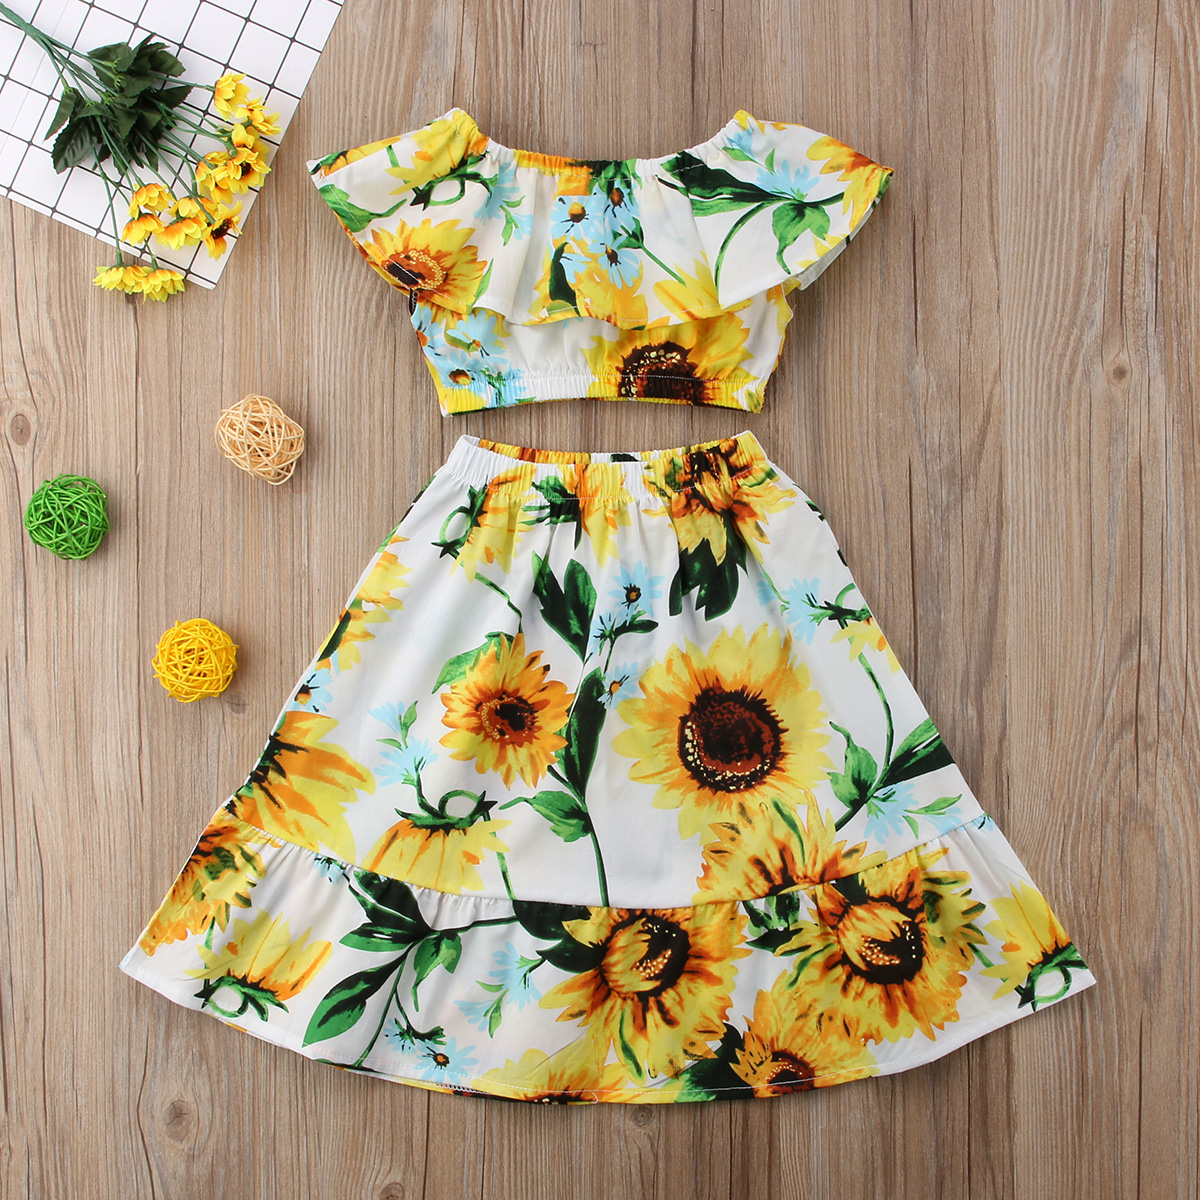 14f68a7953a4 2018 SunFlowers Toddler Kids Baby Girls Off Shoulder Crop Collar Tops Skirt  Outfits Clothes Summer Fashion Set-in Clothing Sets from Mother & Kids on  ...